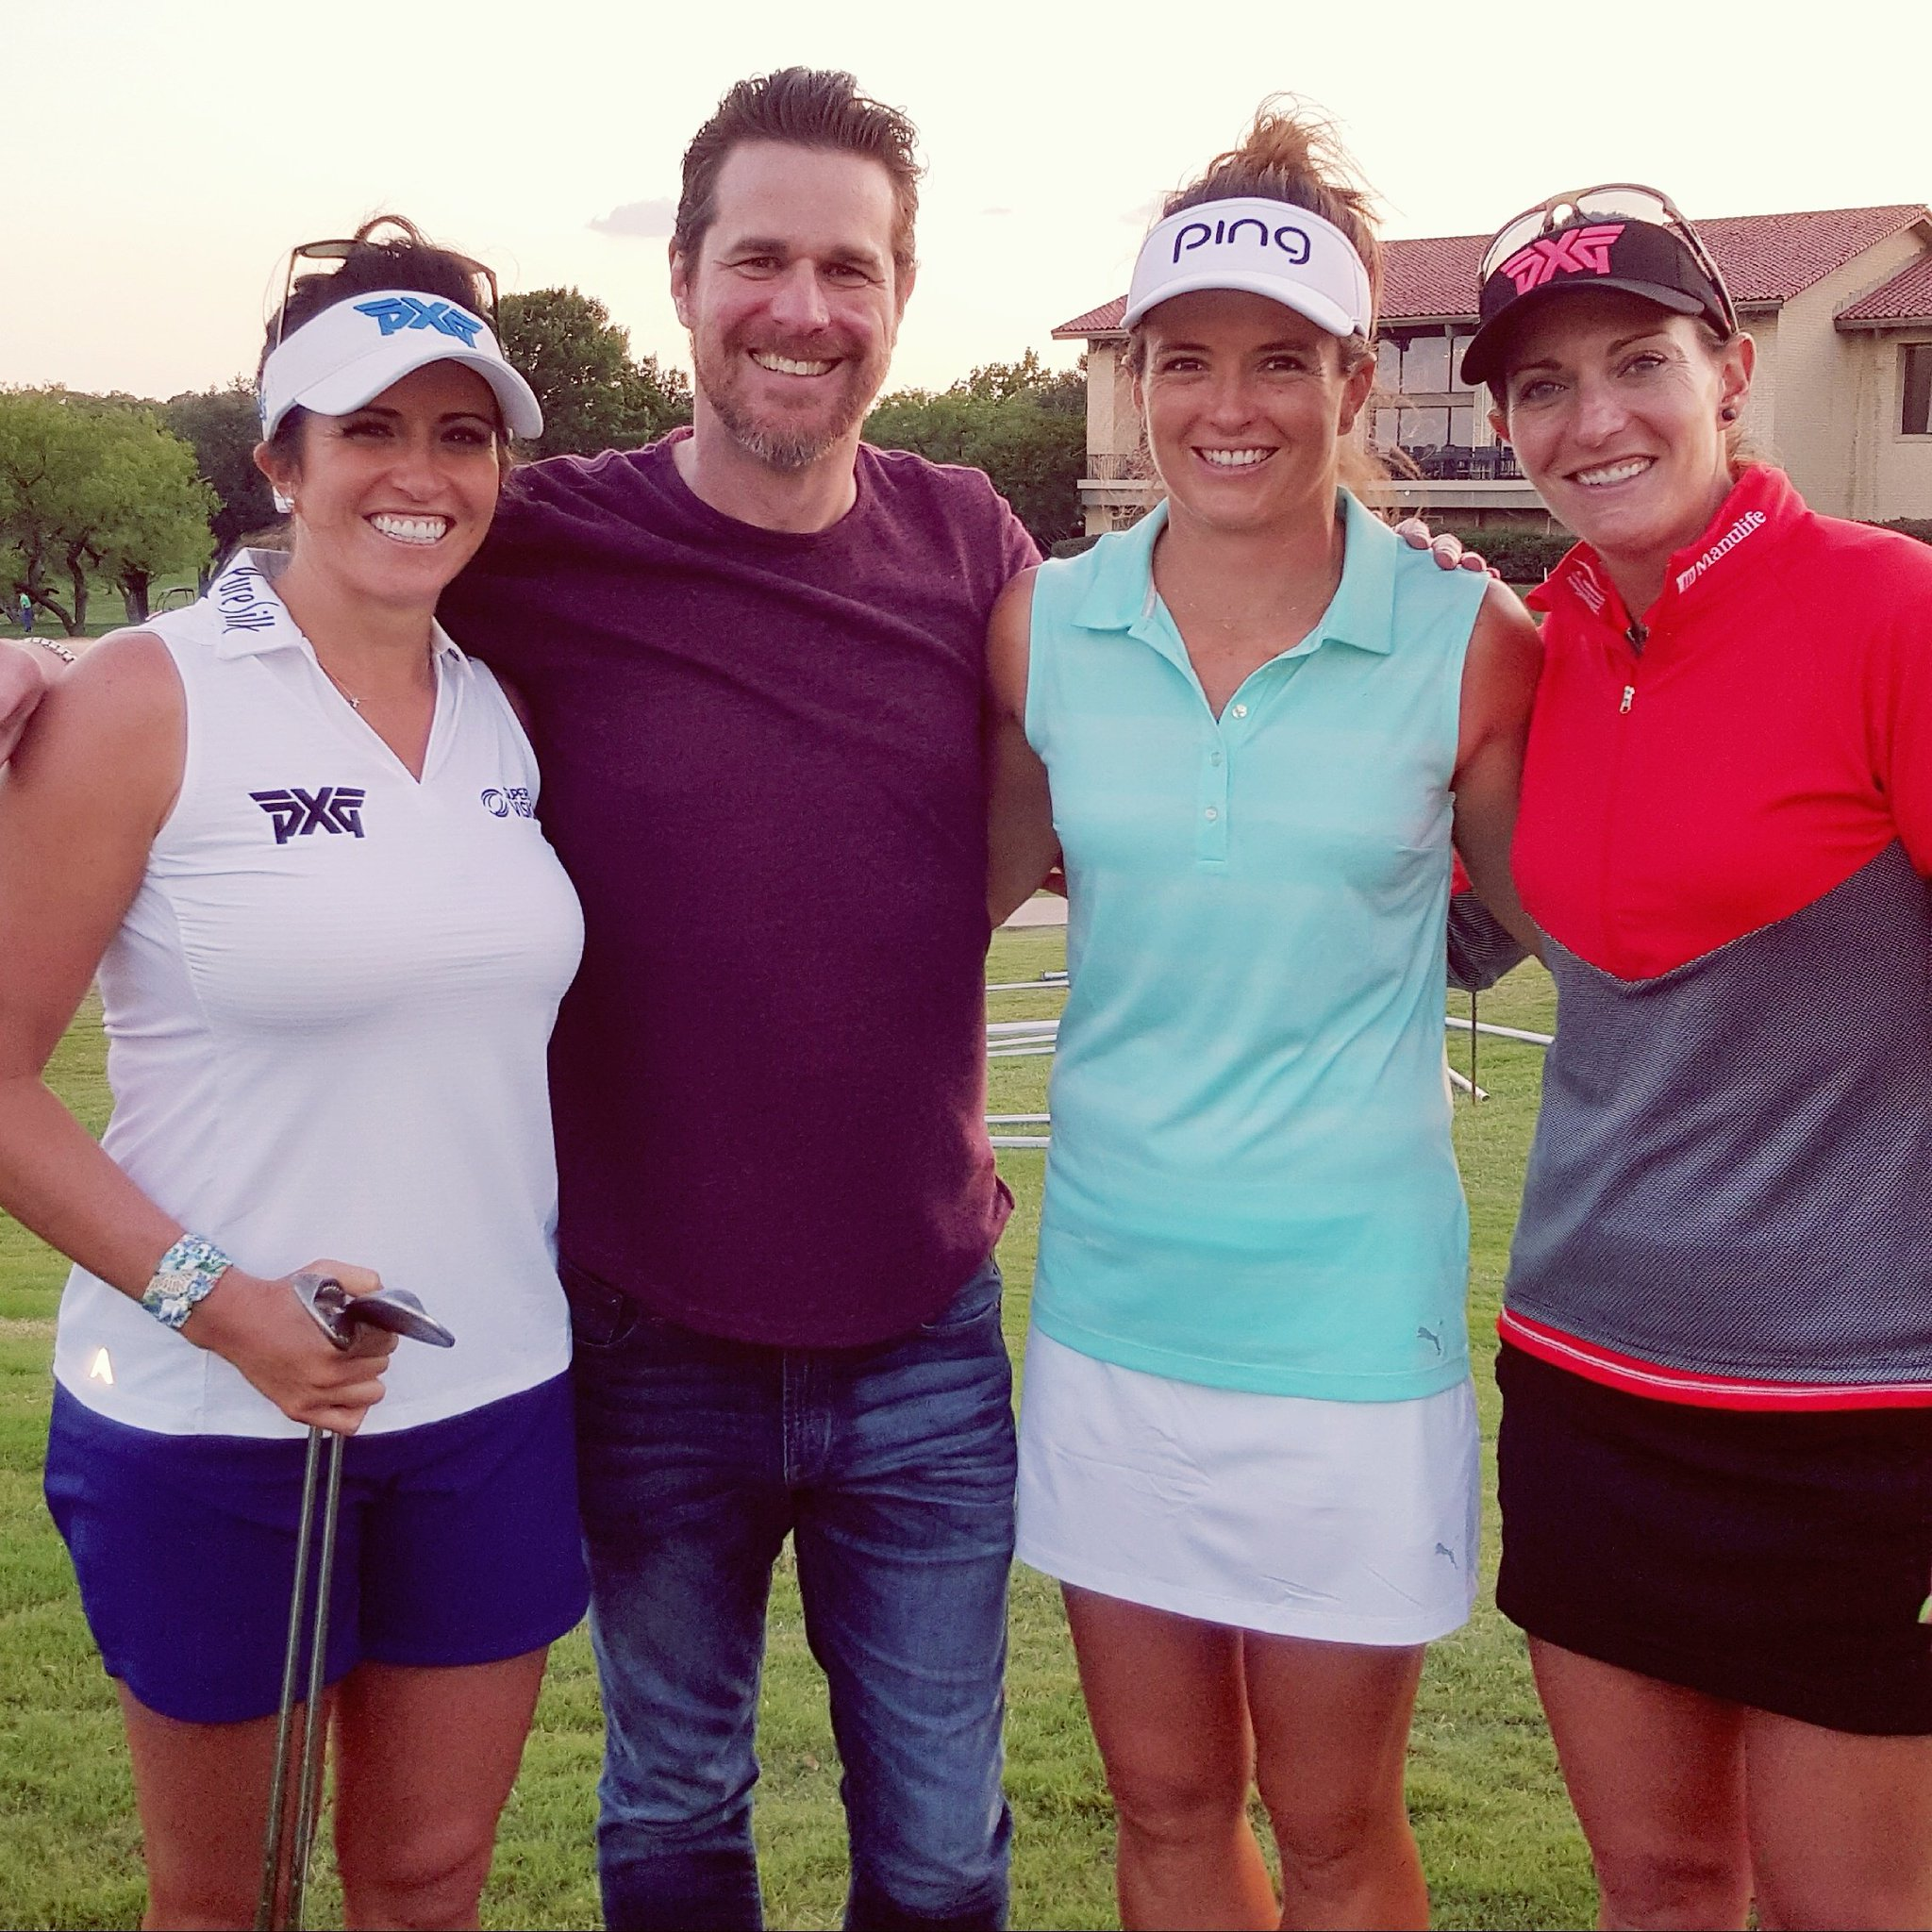 Hanging with @Gerinapiller @JoannaKlatten & #BrittanyLang at the #LPGATxShootout in @thecityofirving! https://t.co/jQVmSVlKEV